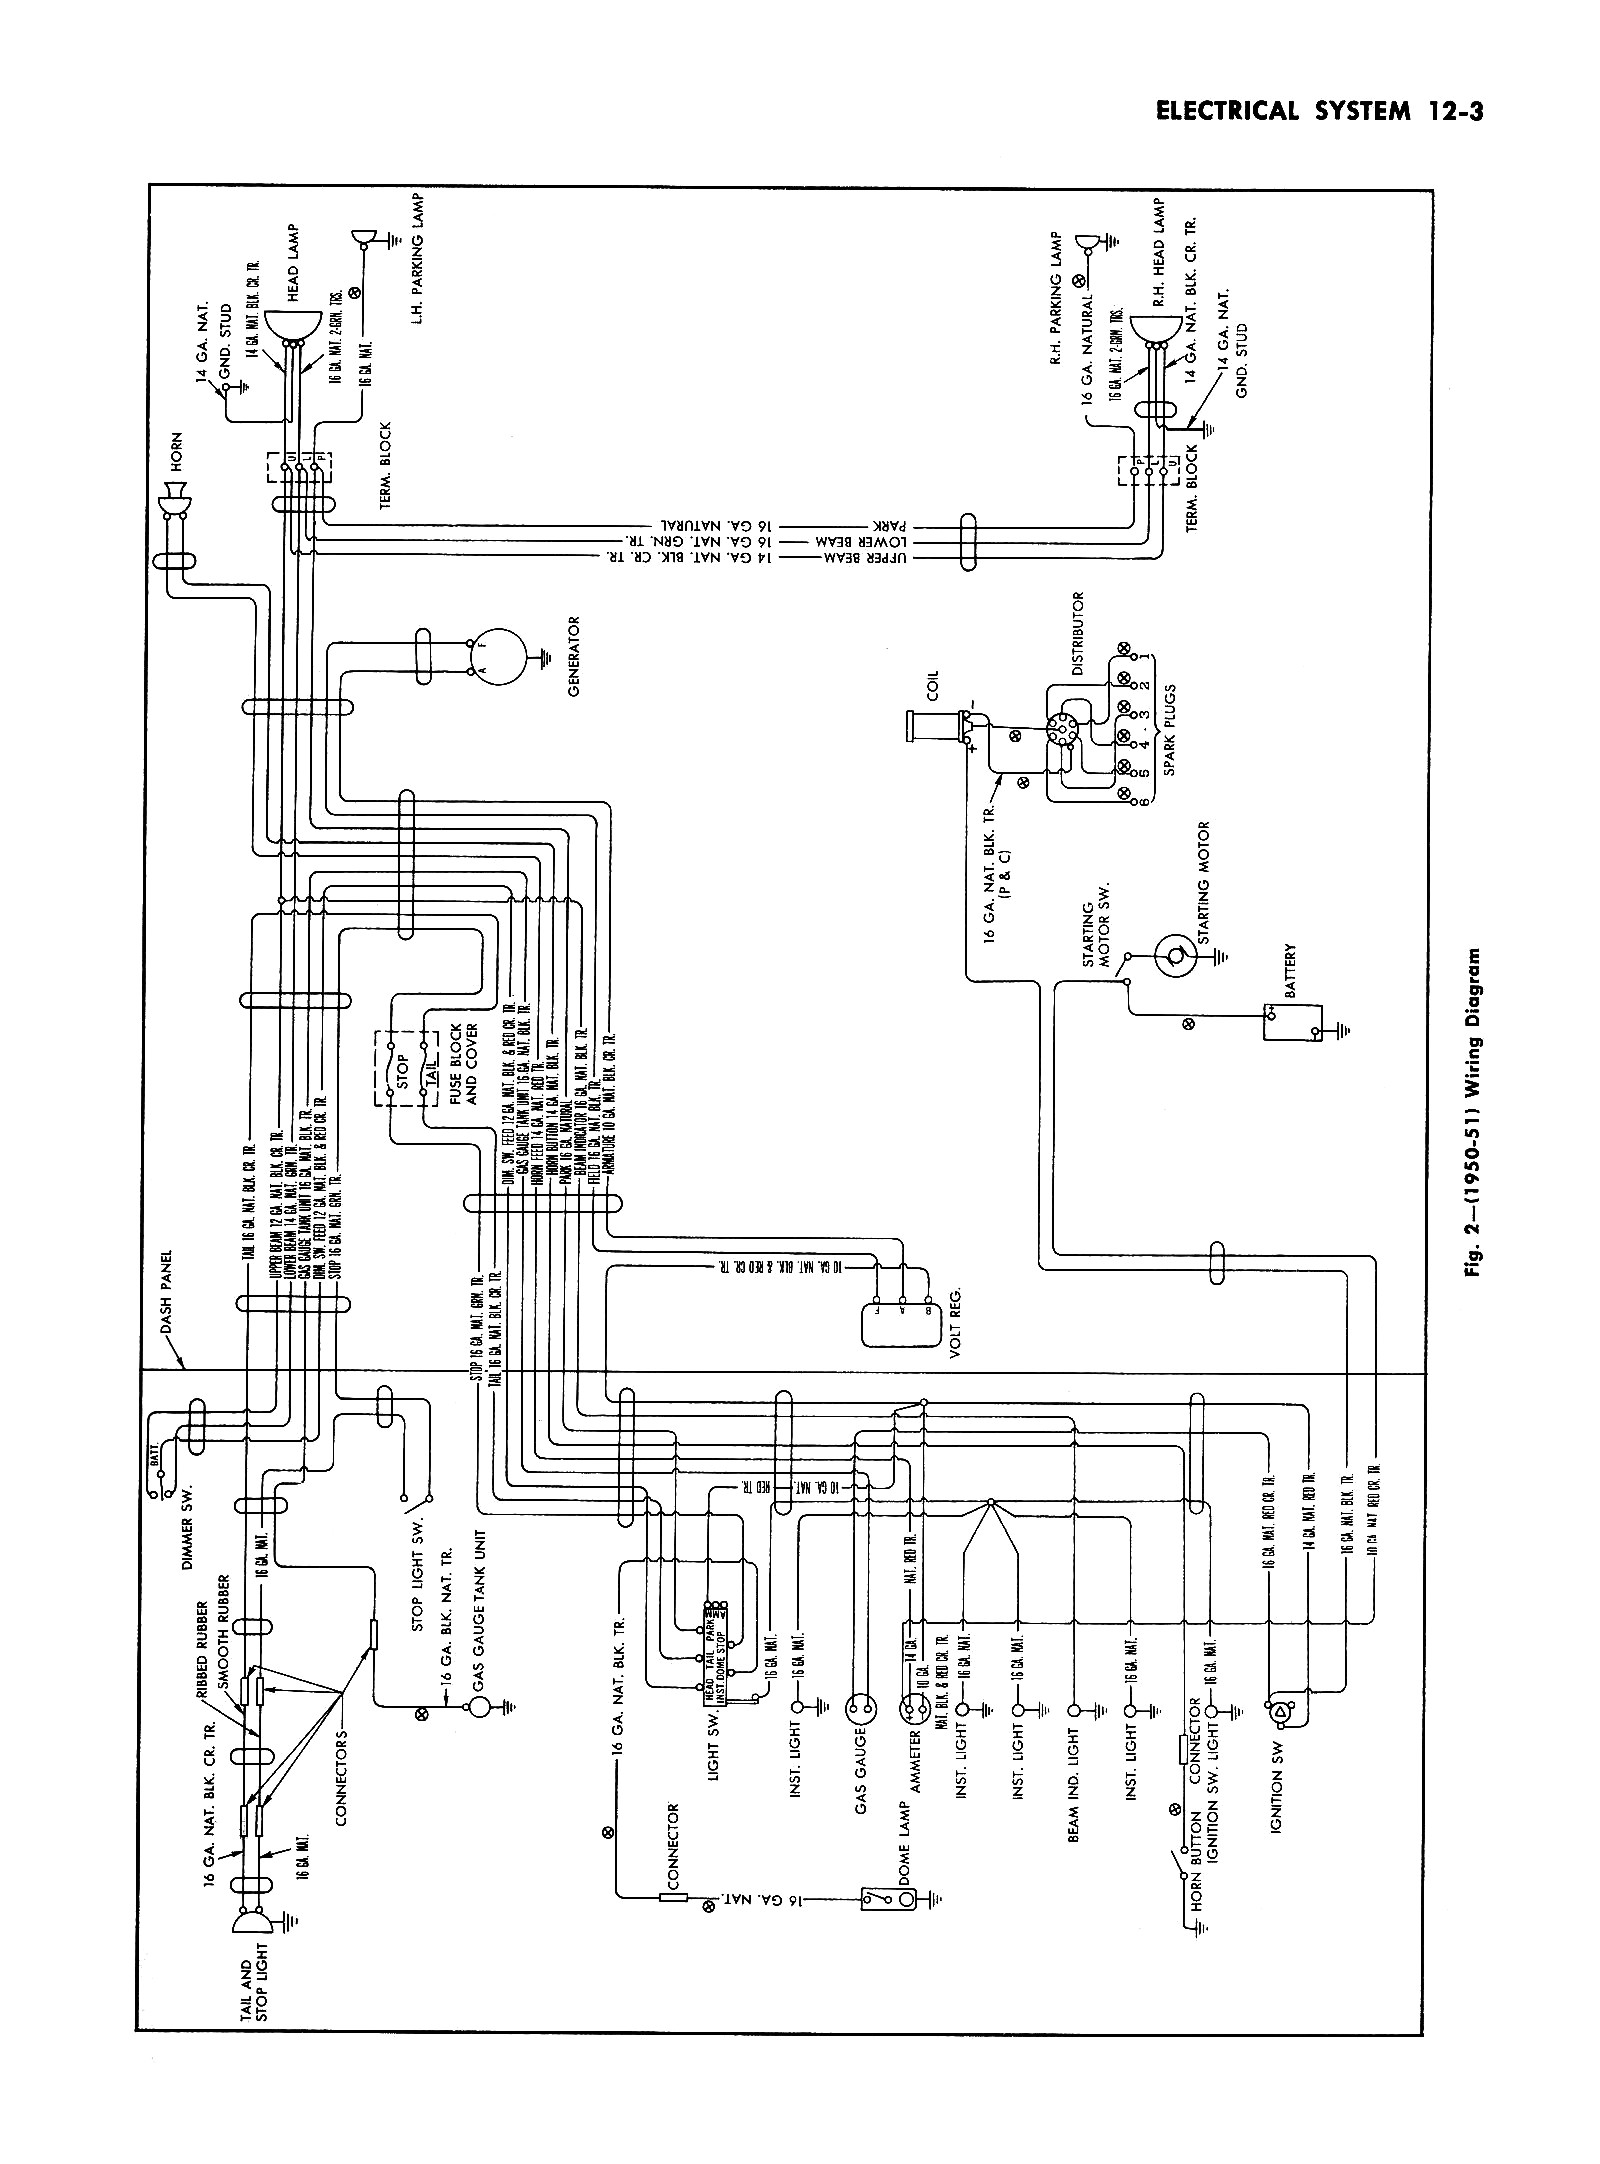 wiring diagram for 1949 ford wiring get free image about wiring diagram